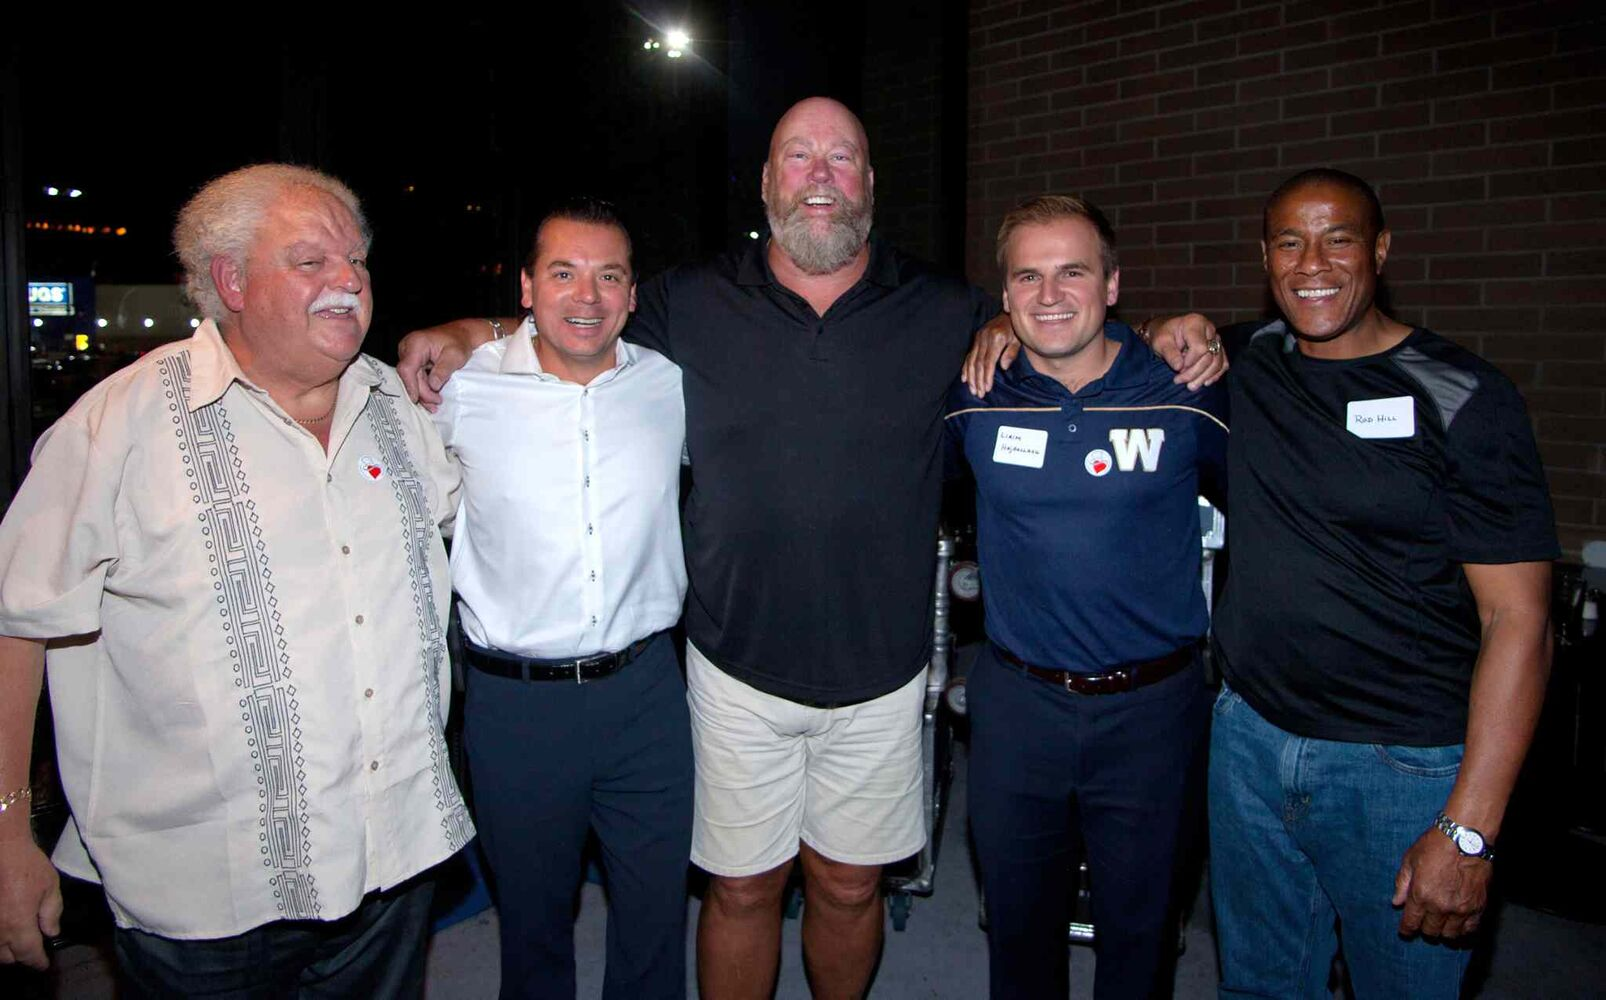 Winnipeg Blue Bombers past and present came out to support Variety, the Children's Charity of Manitoba, at Earls St. Vital on Aug. 25, 2015. The Hearts of Blue and Gold fundraising dinners are held twice a year. Pictured, from left, are Earl Barish (Salisbury House CEO) and Lenny Baranyk (Pratts Food Service CEO) with Chris Walby, Lirim Hajrullahu and Rod Hill. (JOHN JOHNSTON / WINNIPEG FREE PRESS)